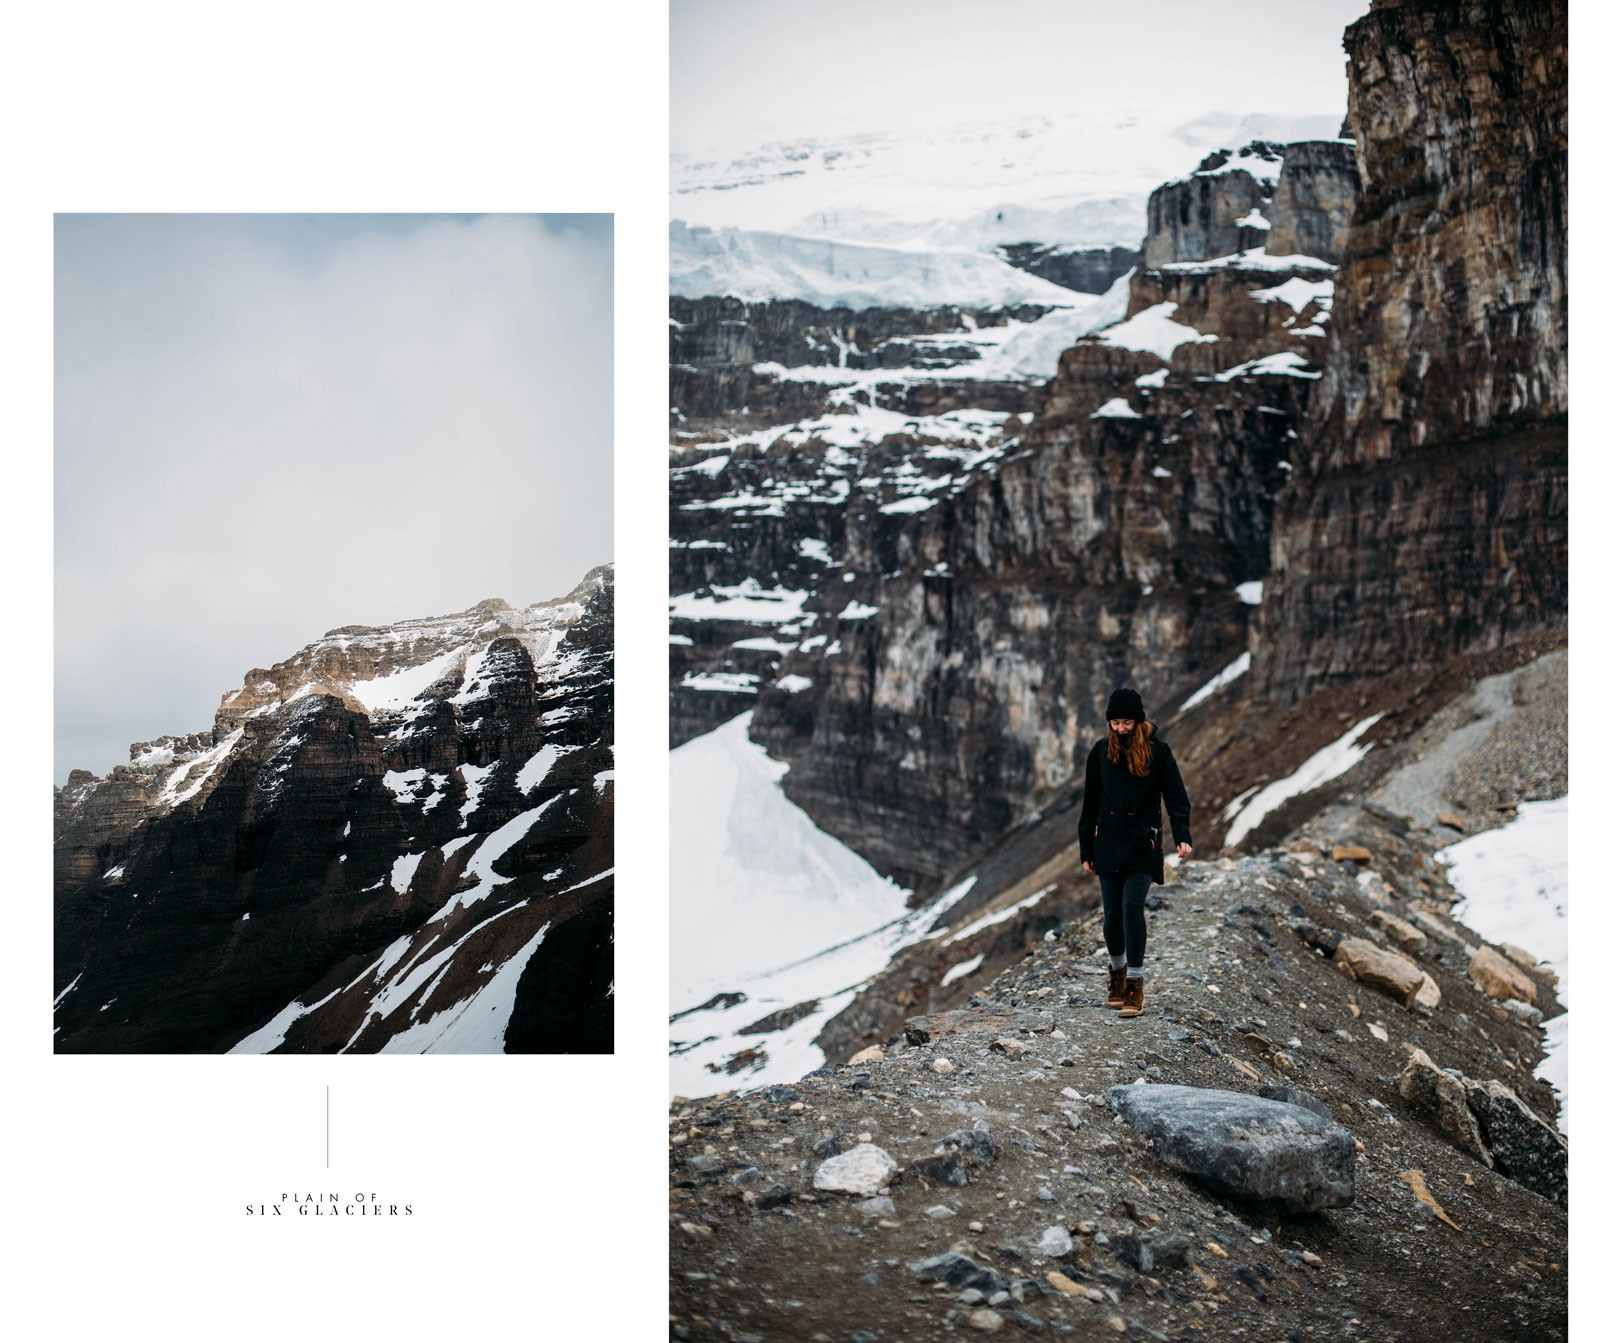 plain of six glaciers ouest canada blog